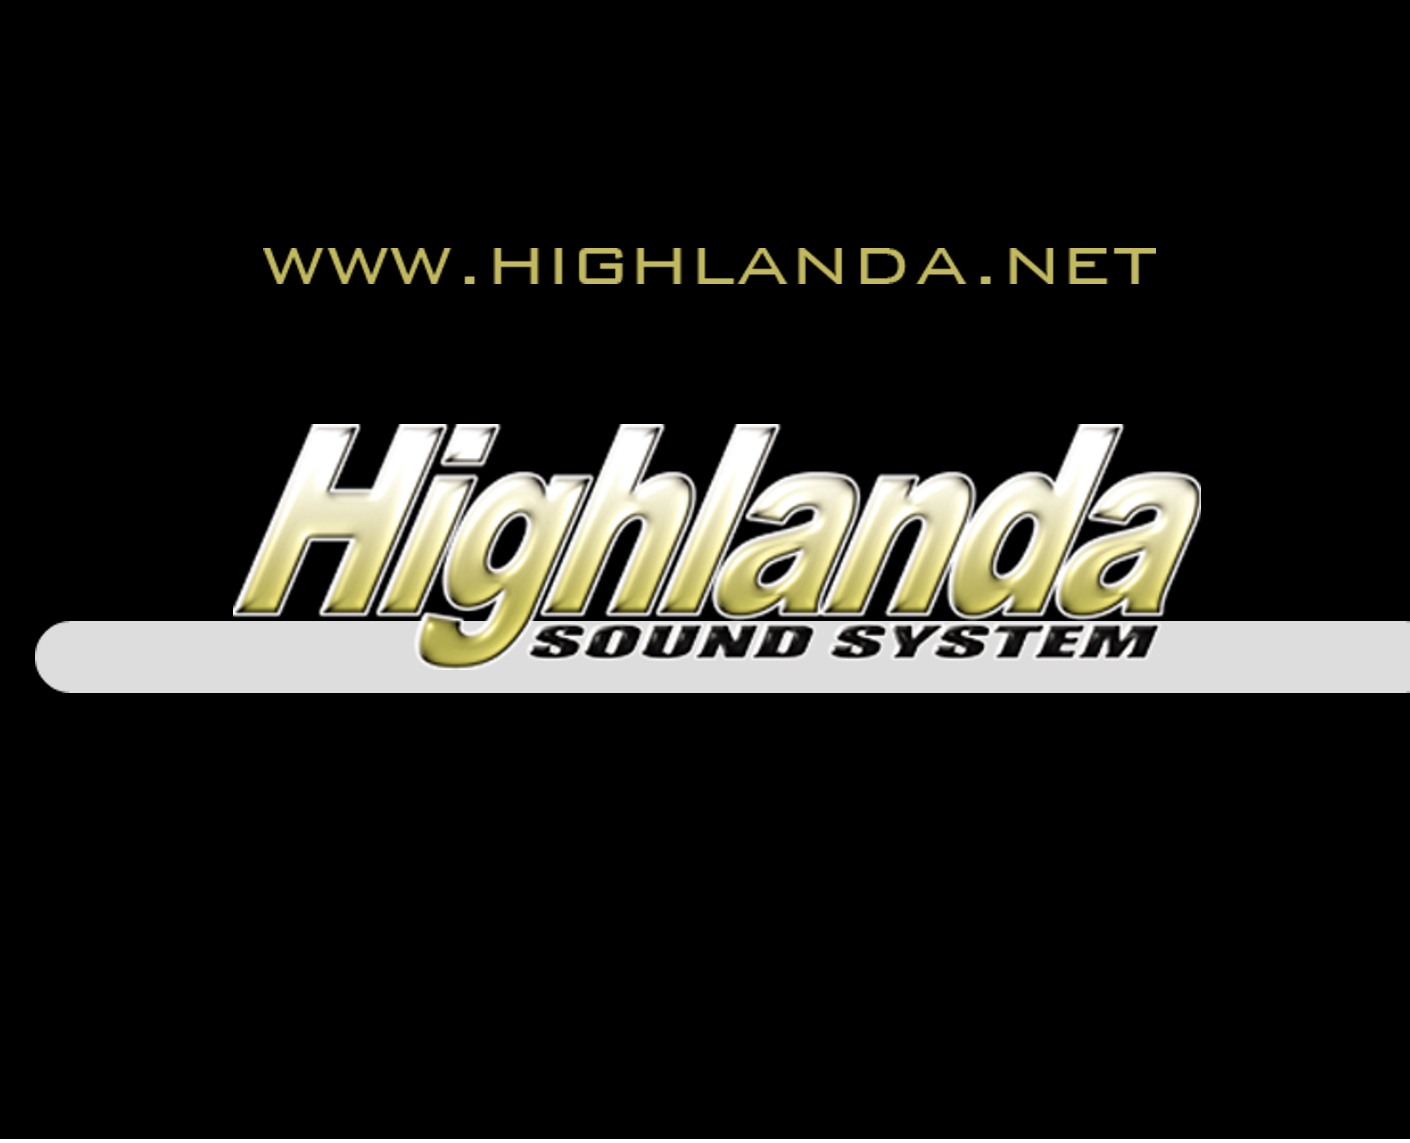 Highlanda Sound